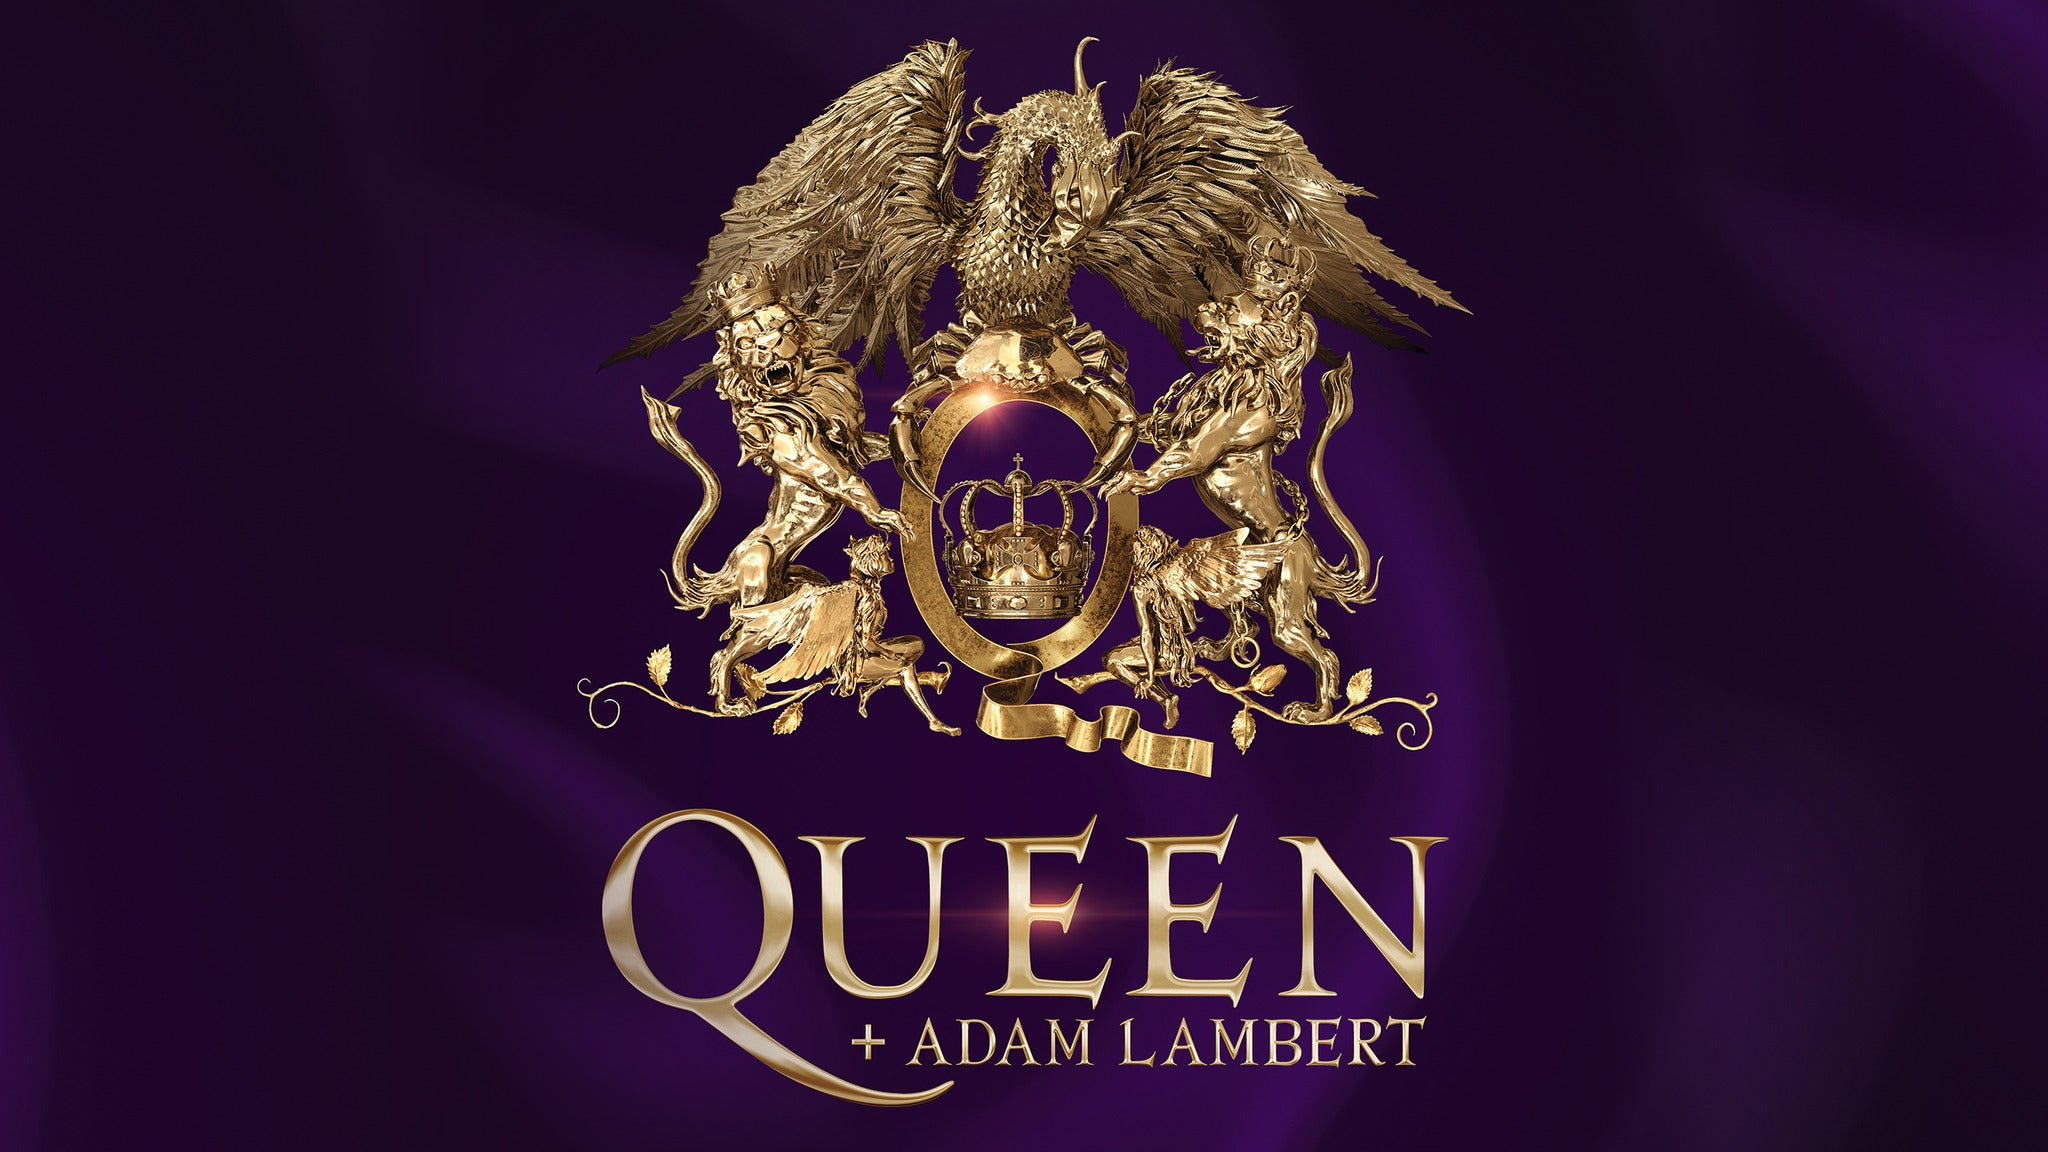 Queen + Adam Lambert: The Rhapsody Tour at Amalie Arena